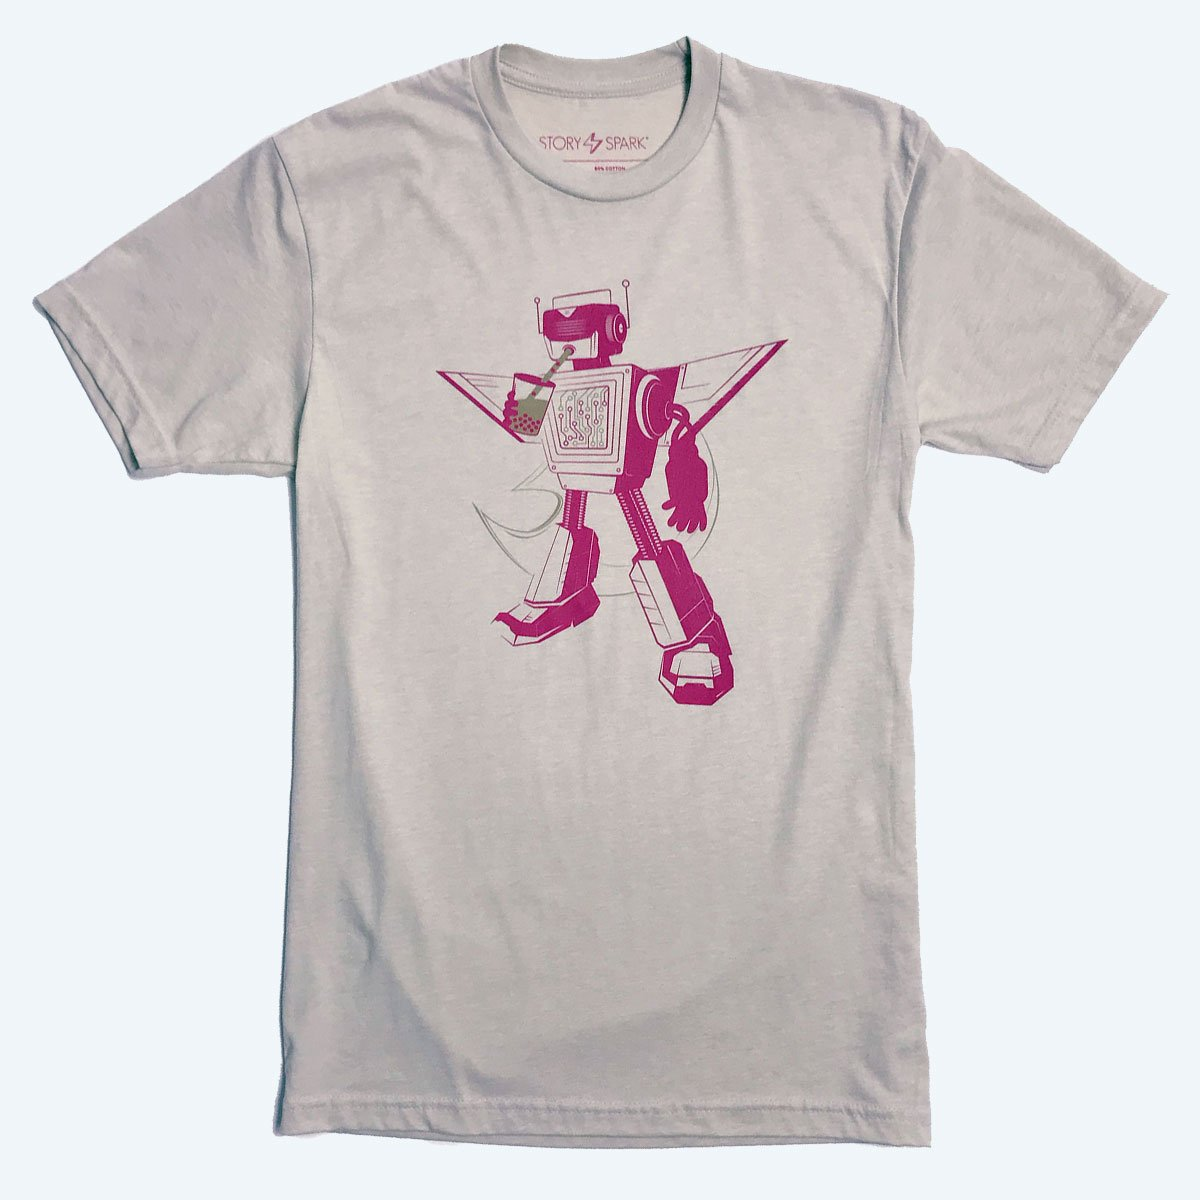 Super Boba Bot T-shirt